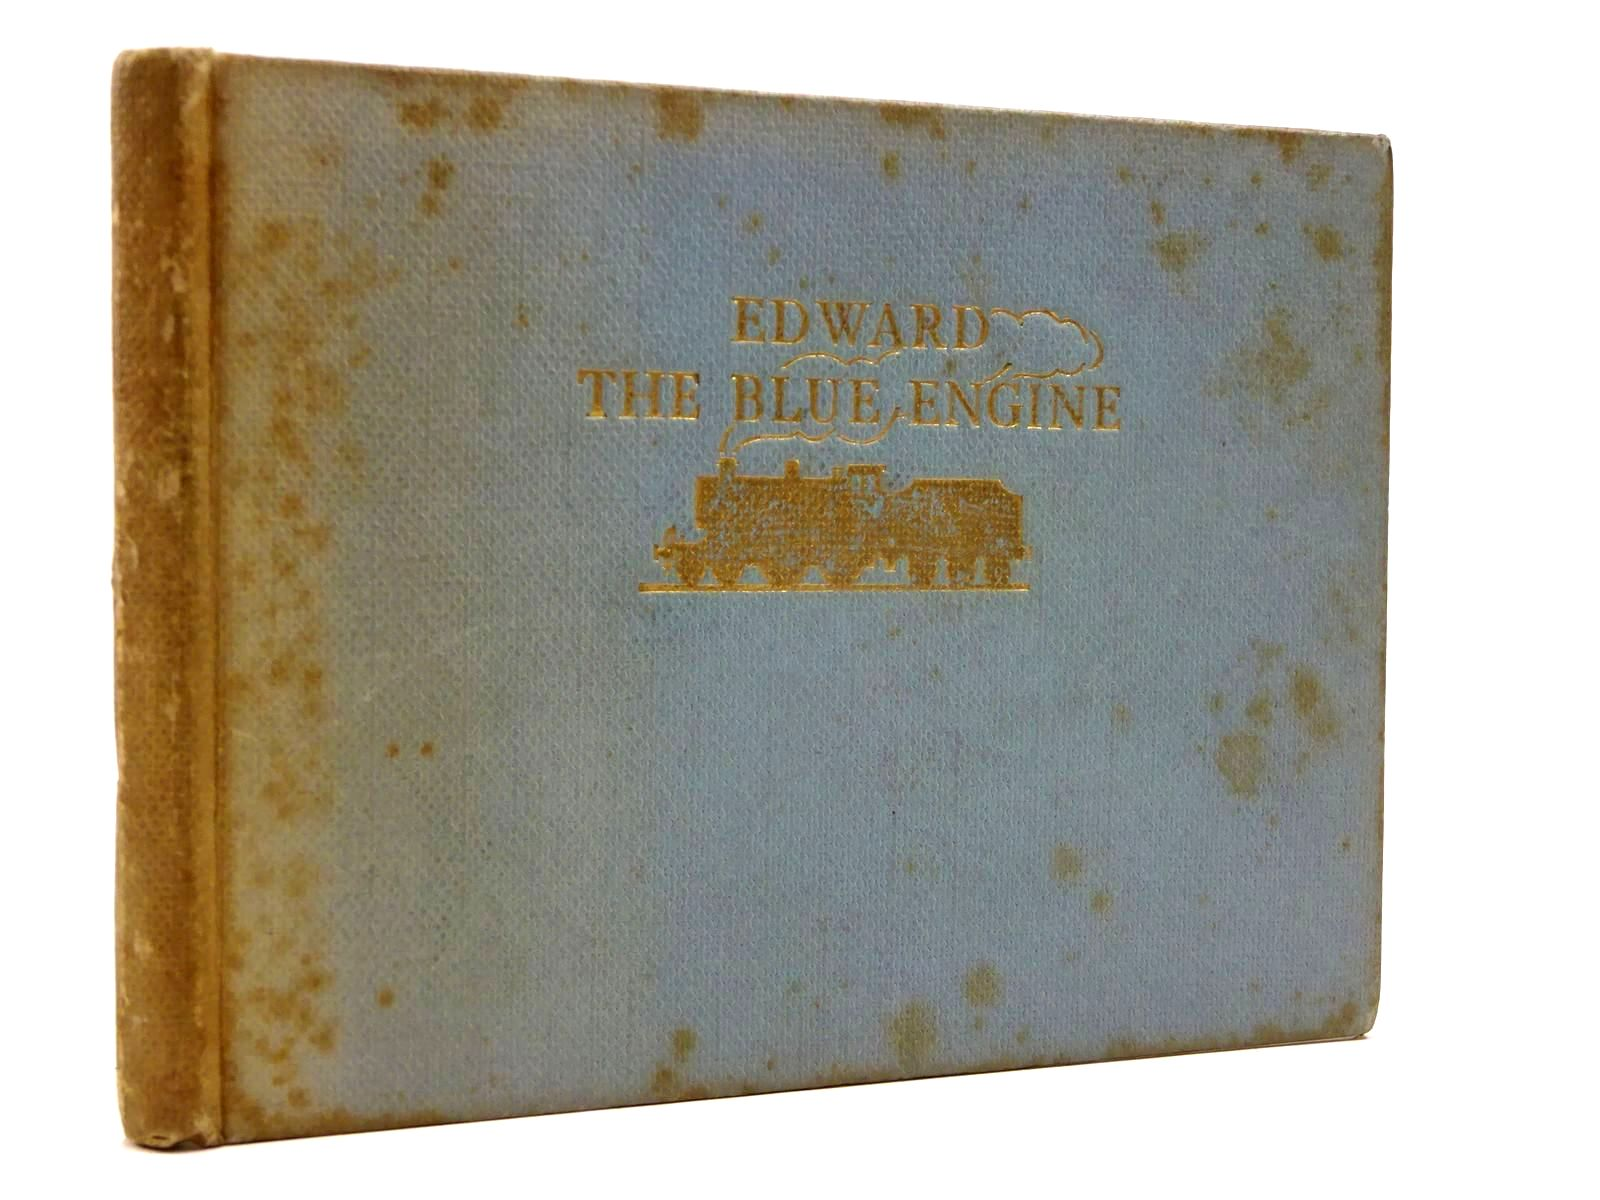 Photo of EDWARD THE BLUE ENGINE written by Awdry, Rev. W. illustrated by Dalby, C. Reginald published by Edmund Ward Ltd. (STOCK CODE: 2130425)  for sale by Stella & Rose's Books